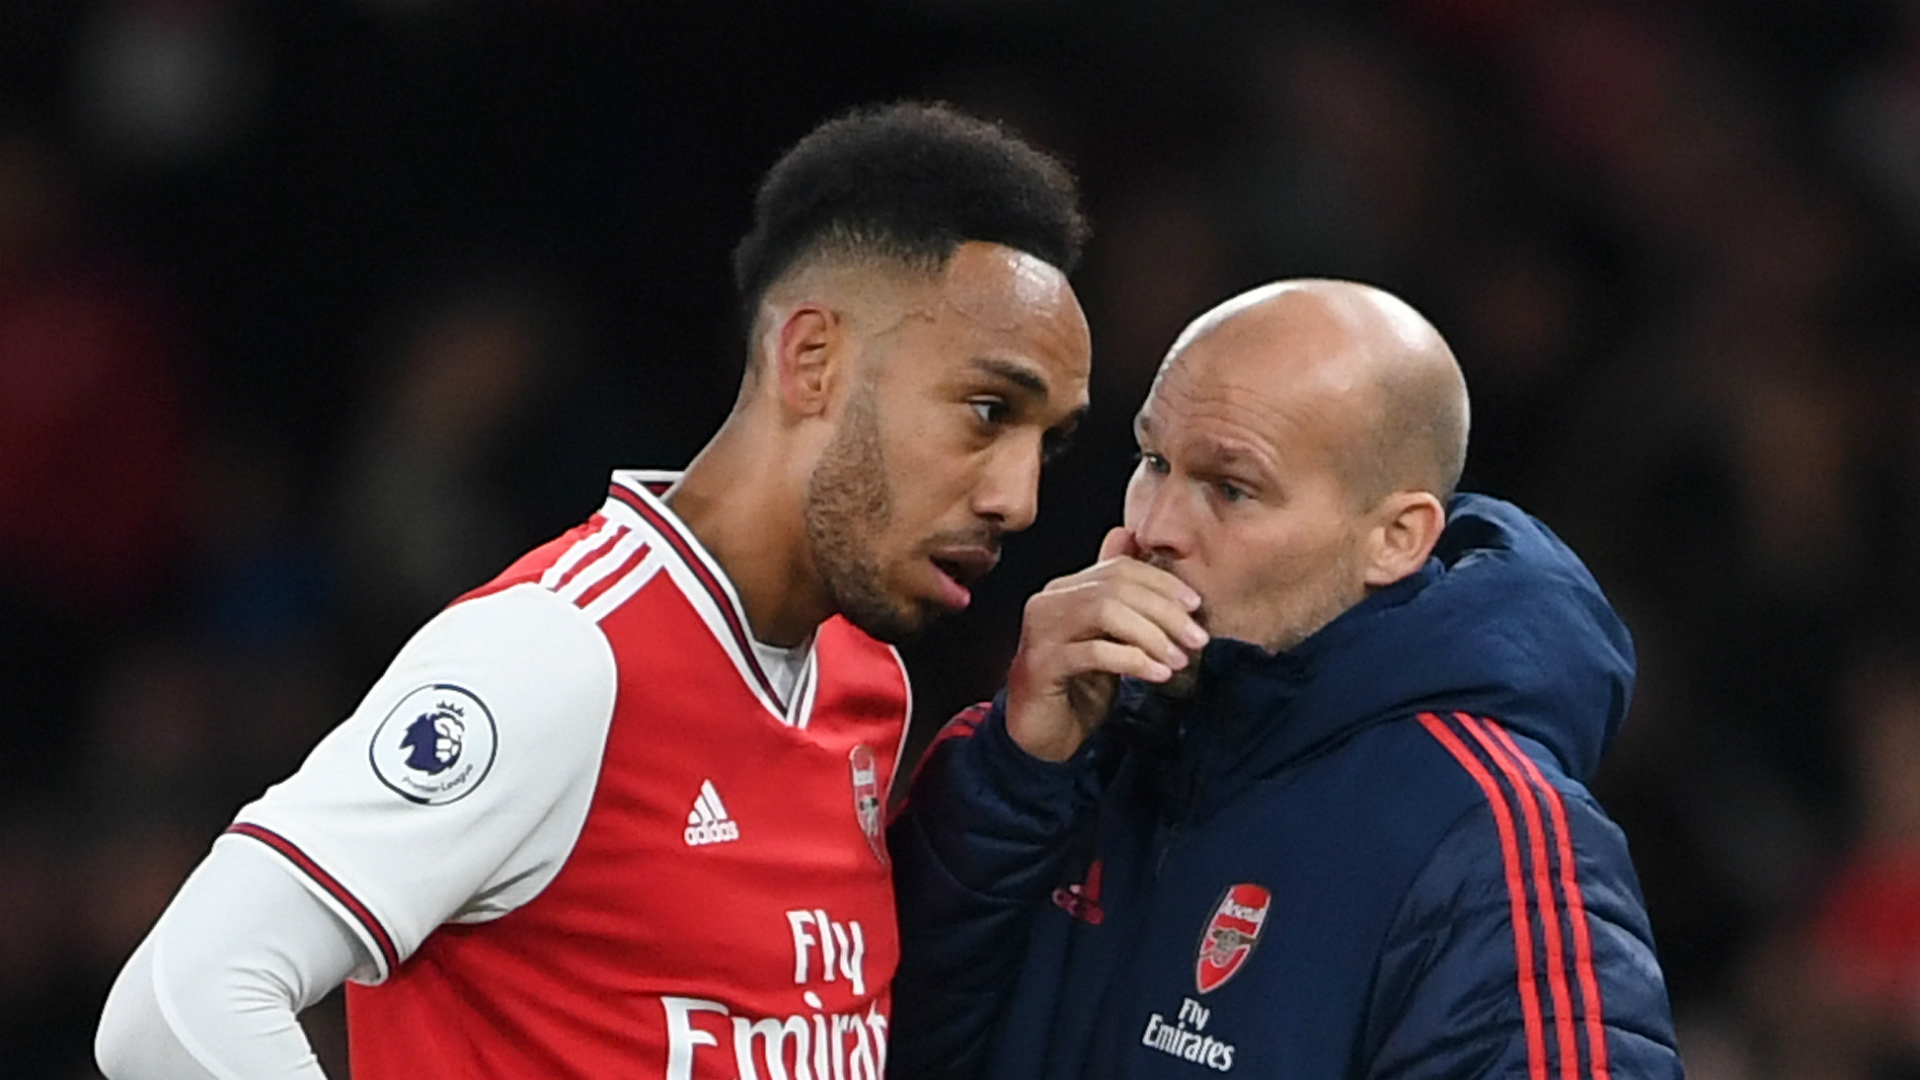 Ljungberg can give Arsenal 'something special' - Aubameyang